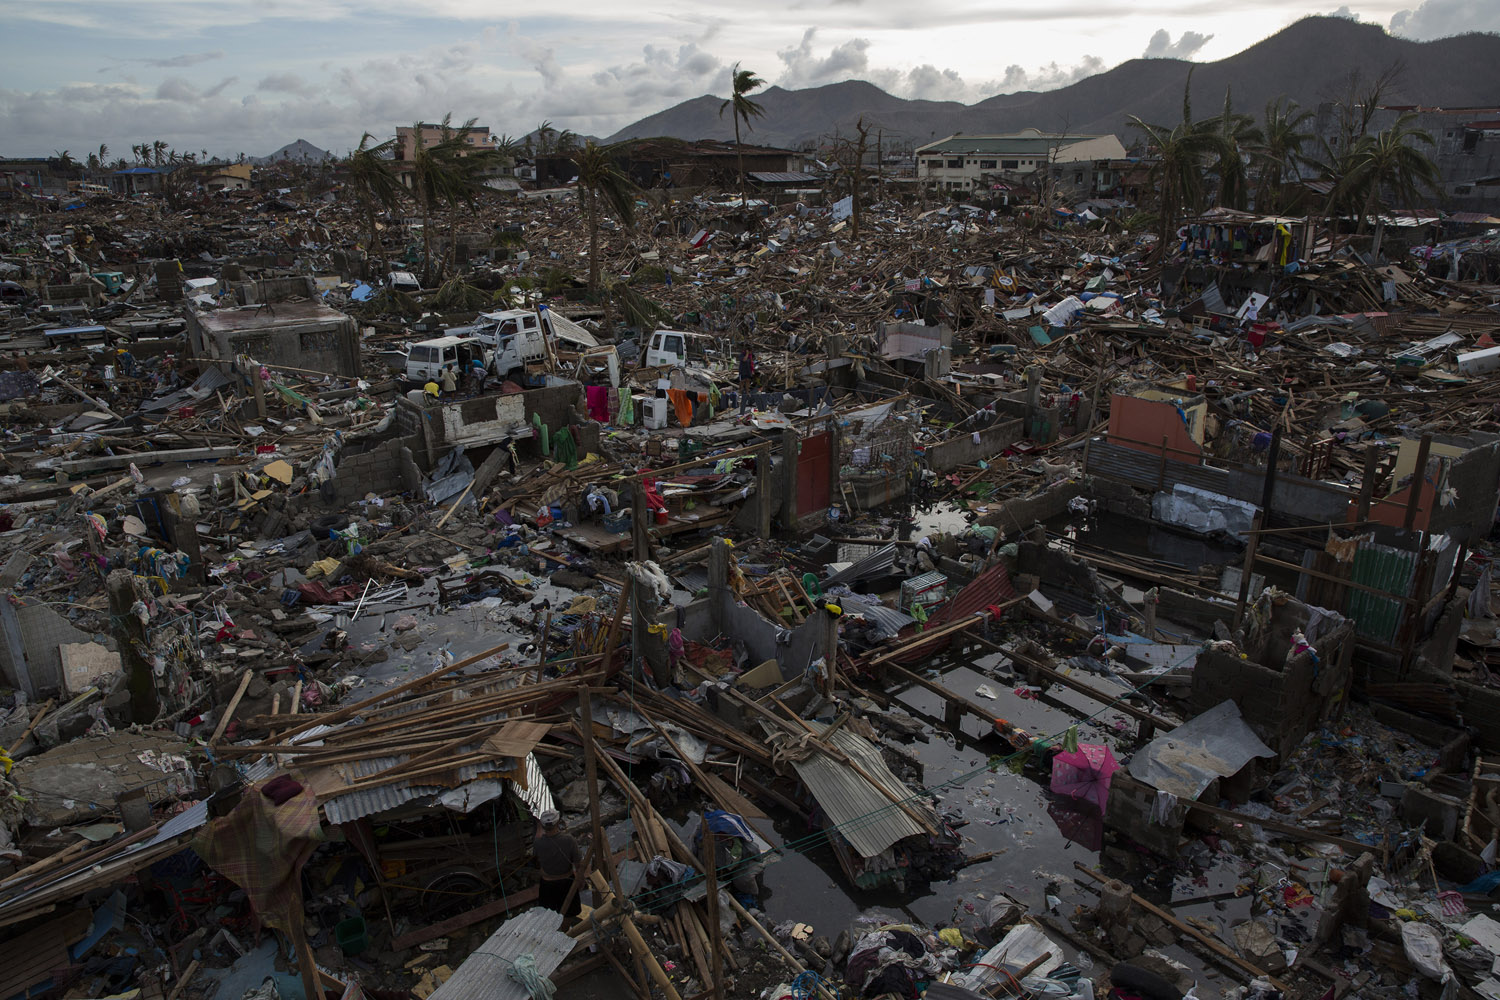 An entire neighborhood destroyed by the typhoon in Tacloban, Nov. 13, 2013.